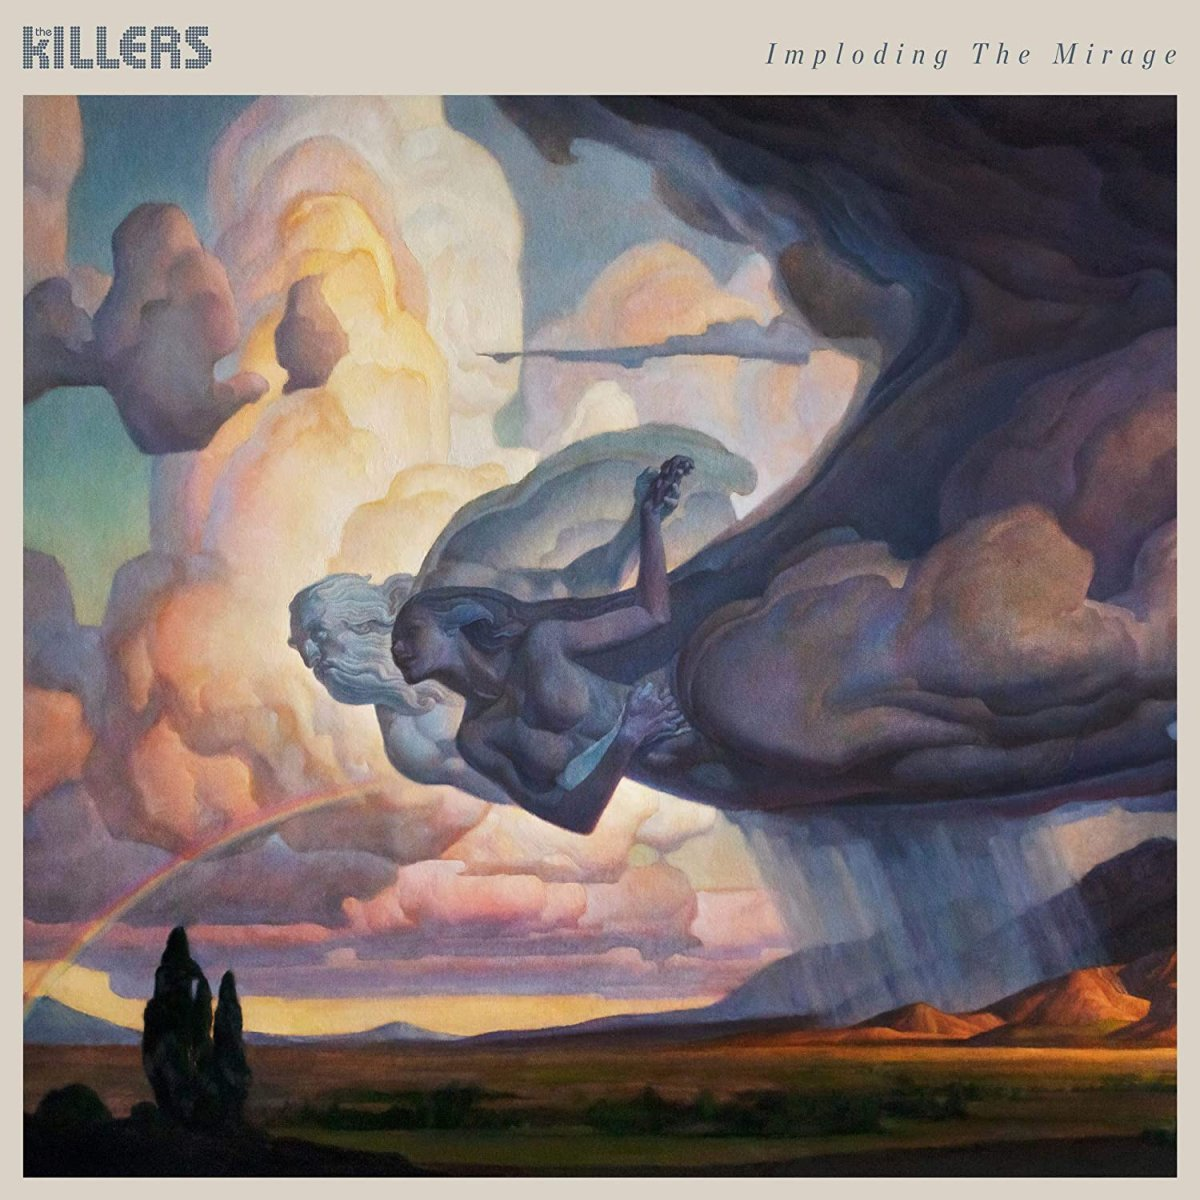 The Killers - 'Imploding the Mirage'